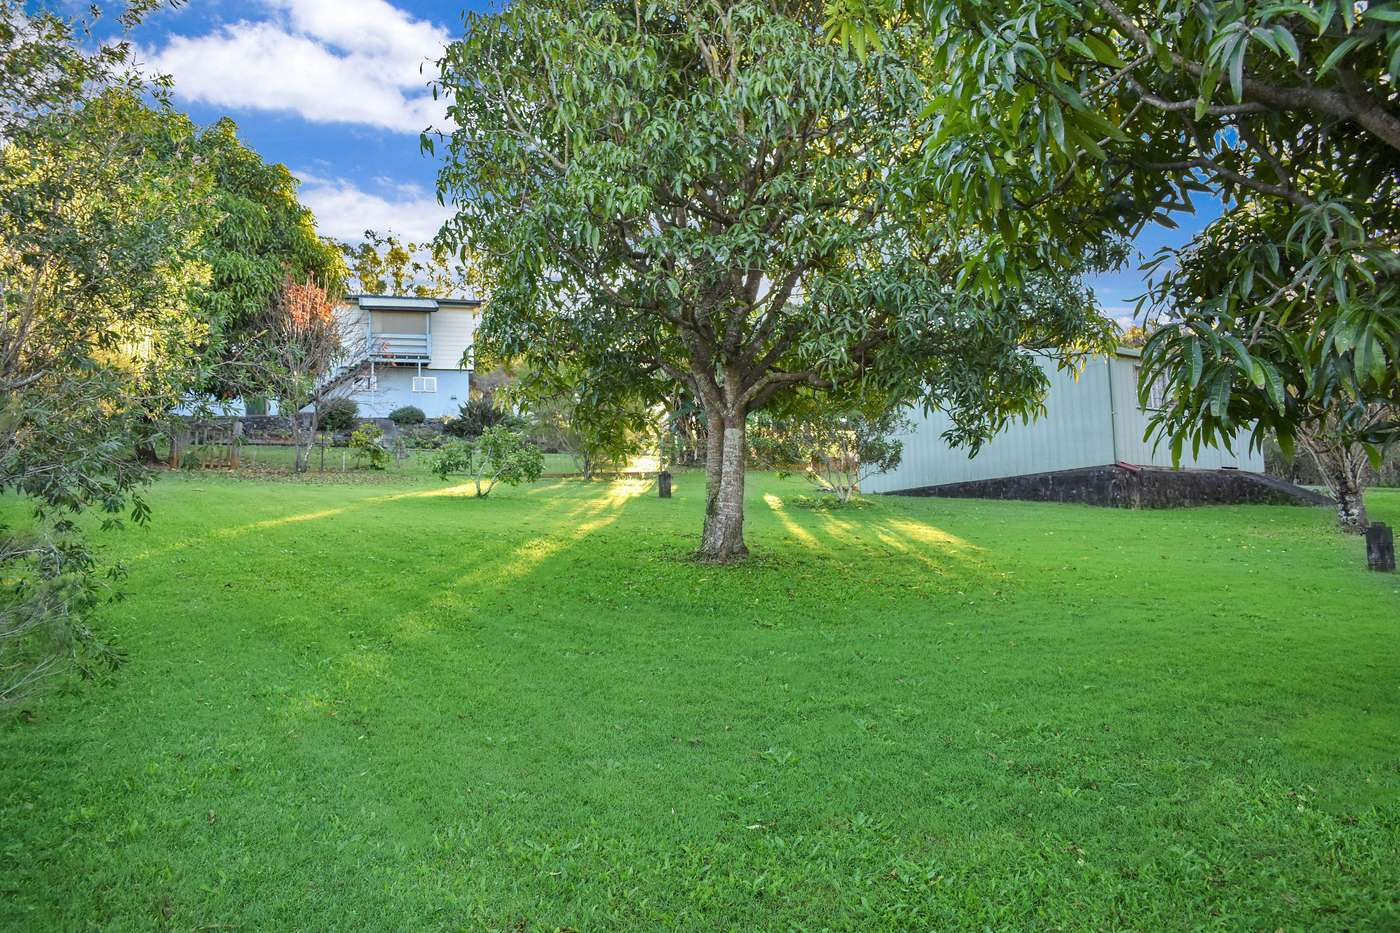 Main view of Homely house listing, 42 Buzaki Road, Glass House Mountains, QLD 4518